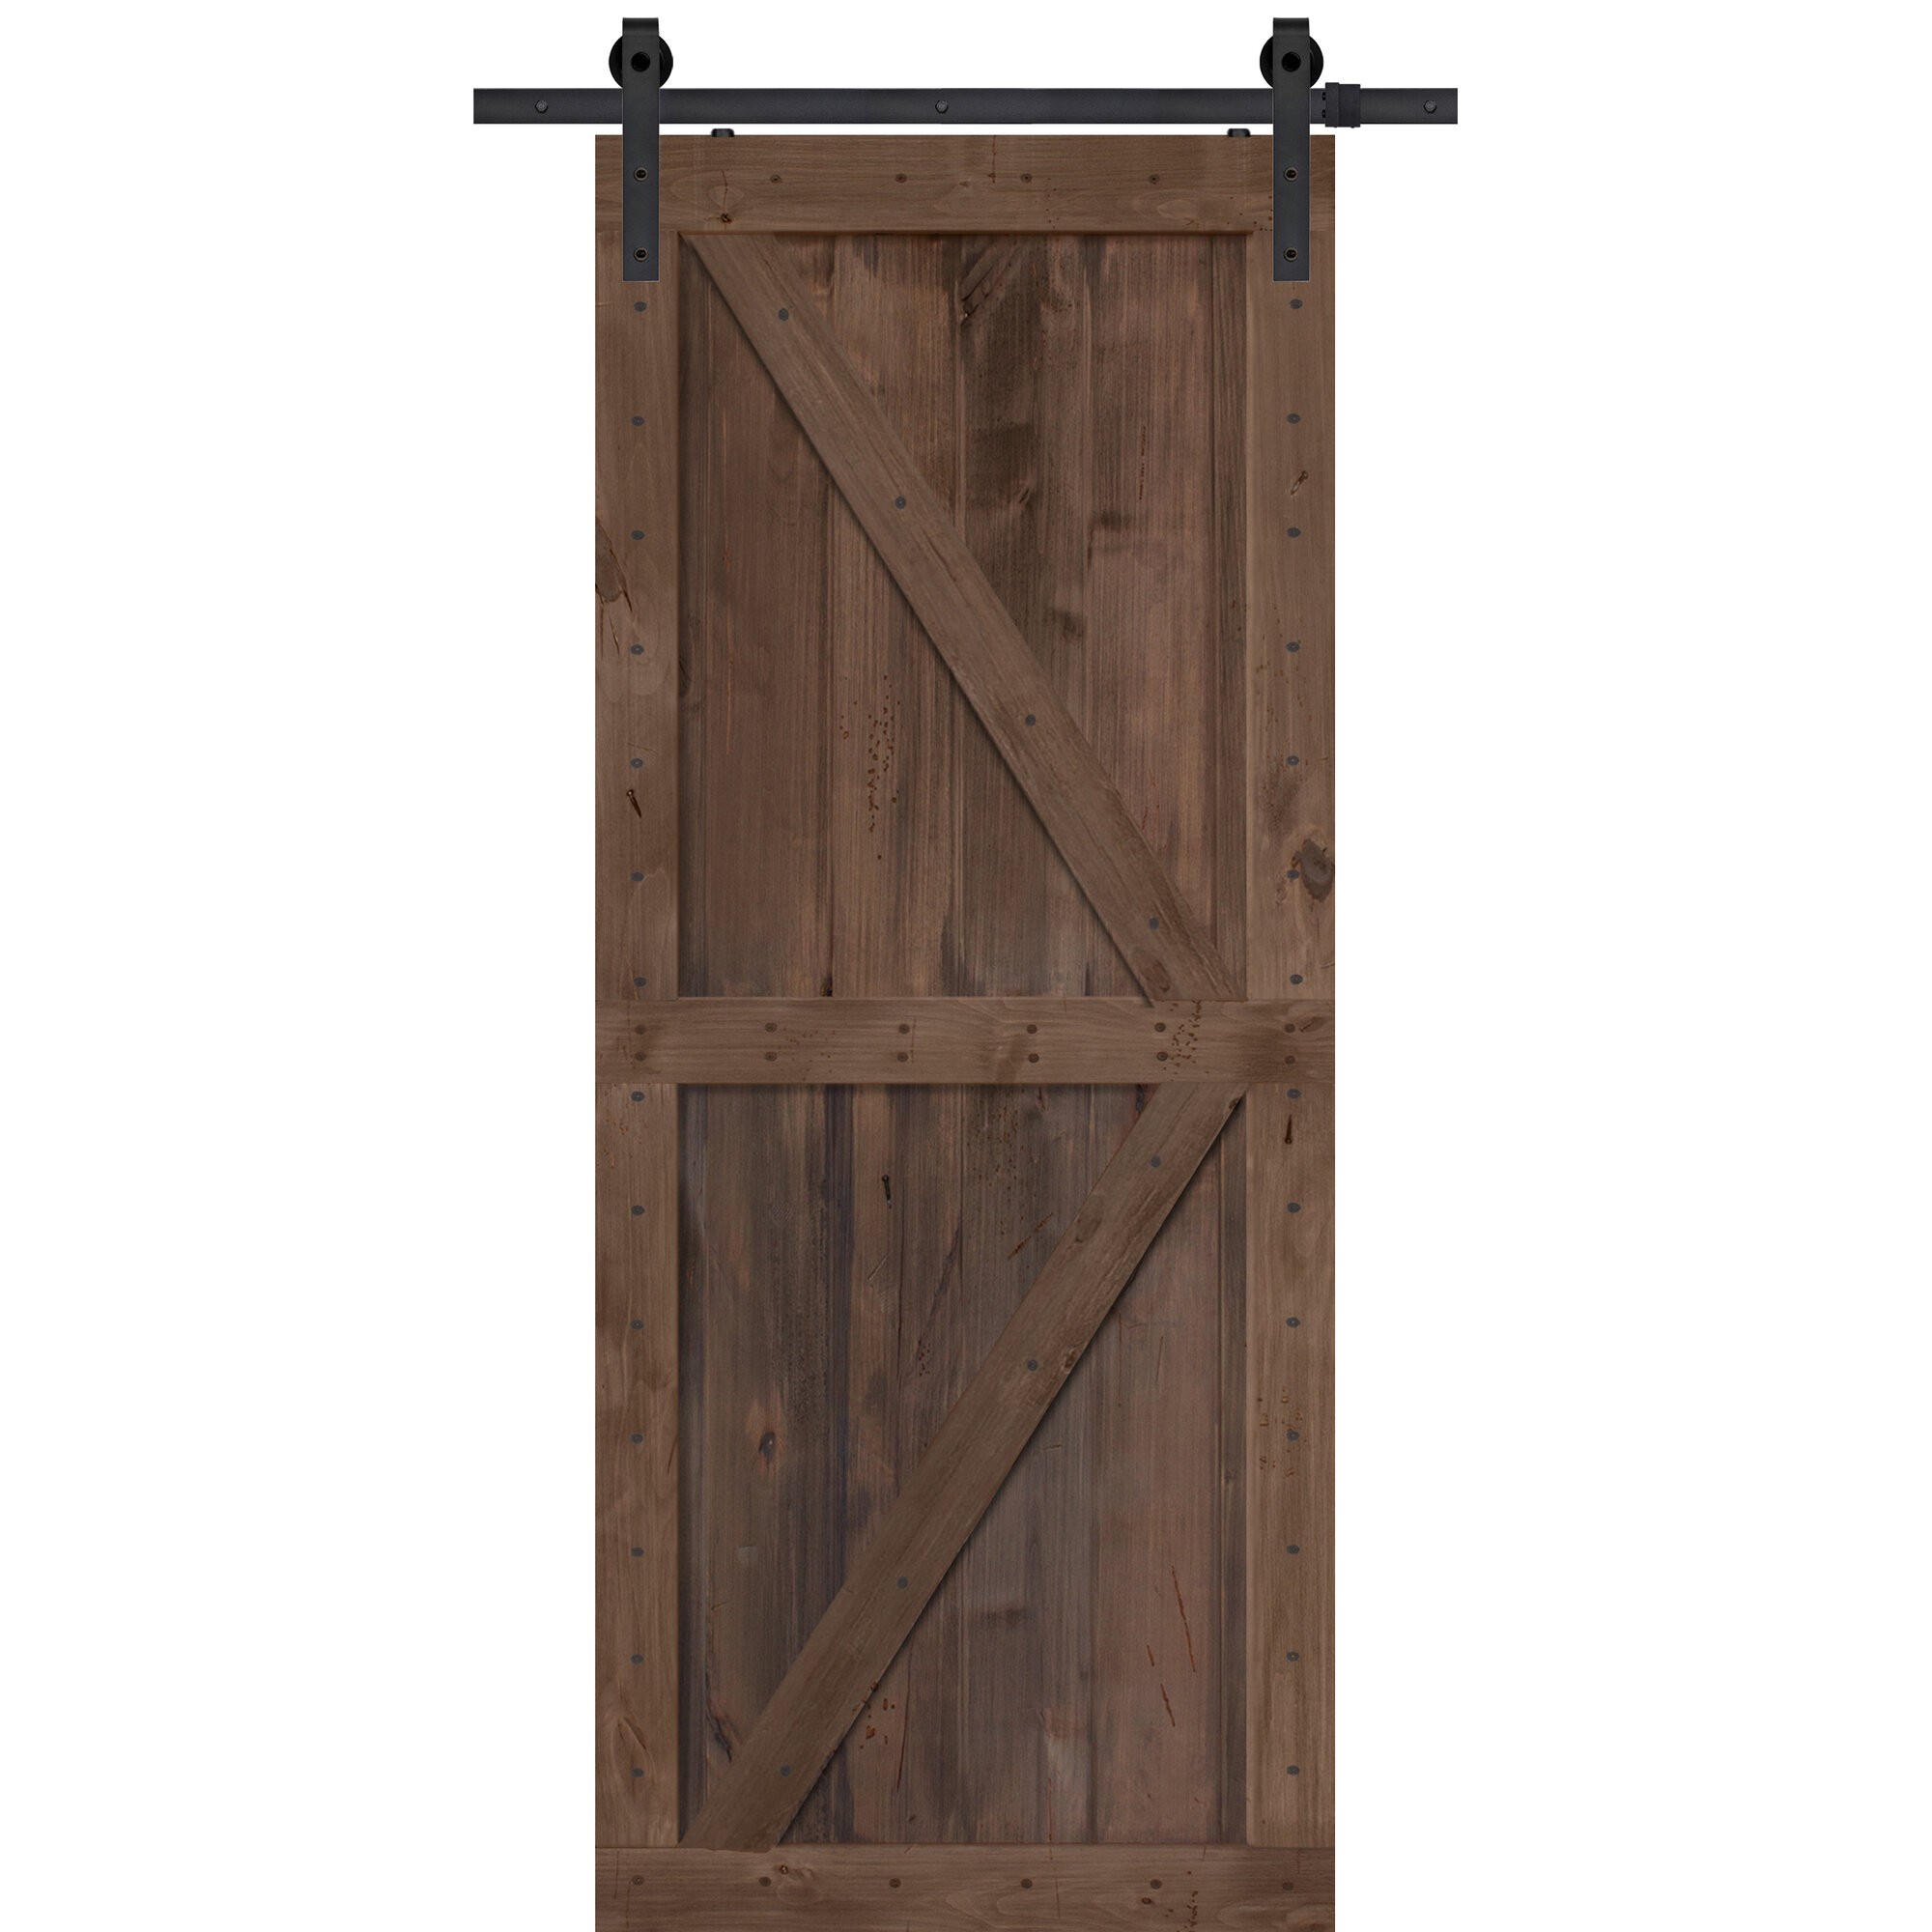 Details About Double Z Solid Wood Panelled Alder Interior Barn Door 84 H X 36 W Unfinished